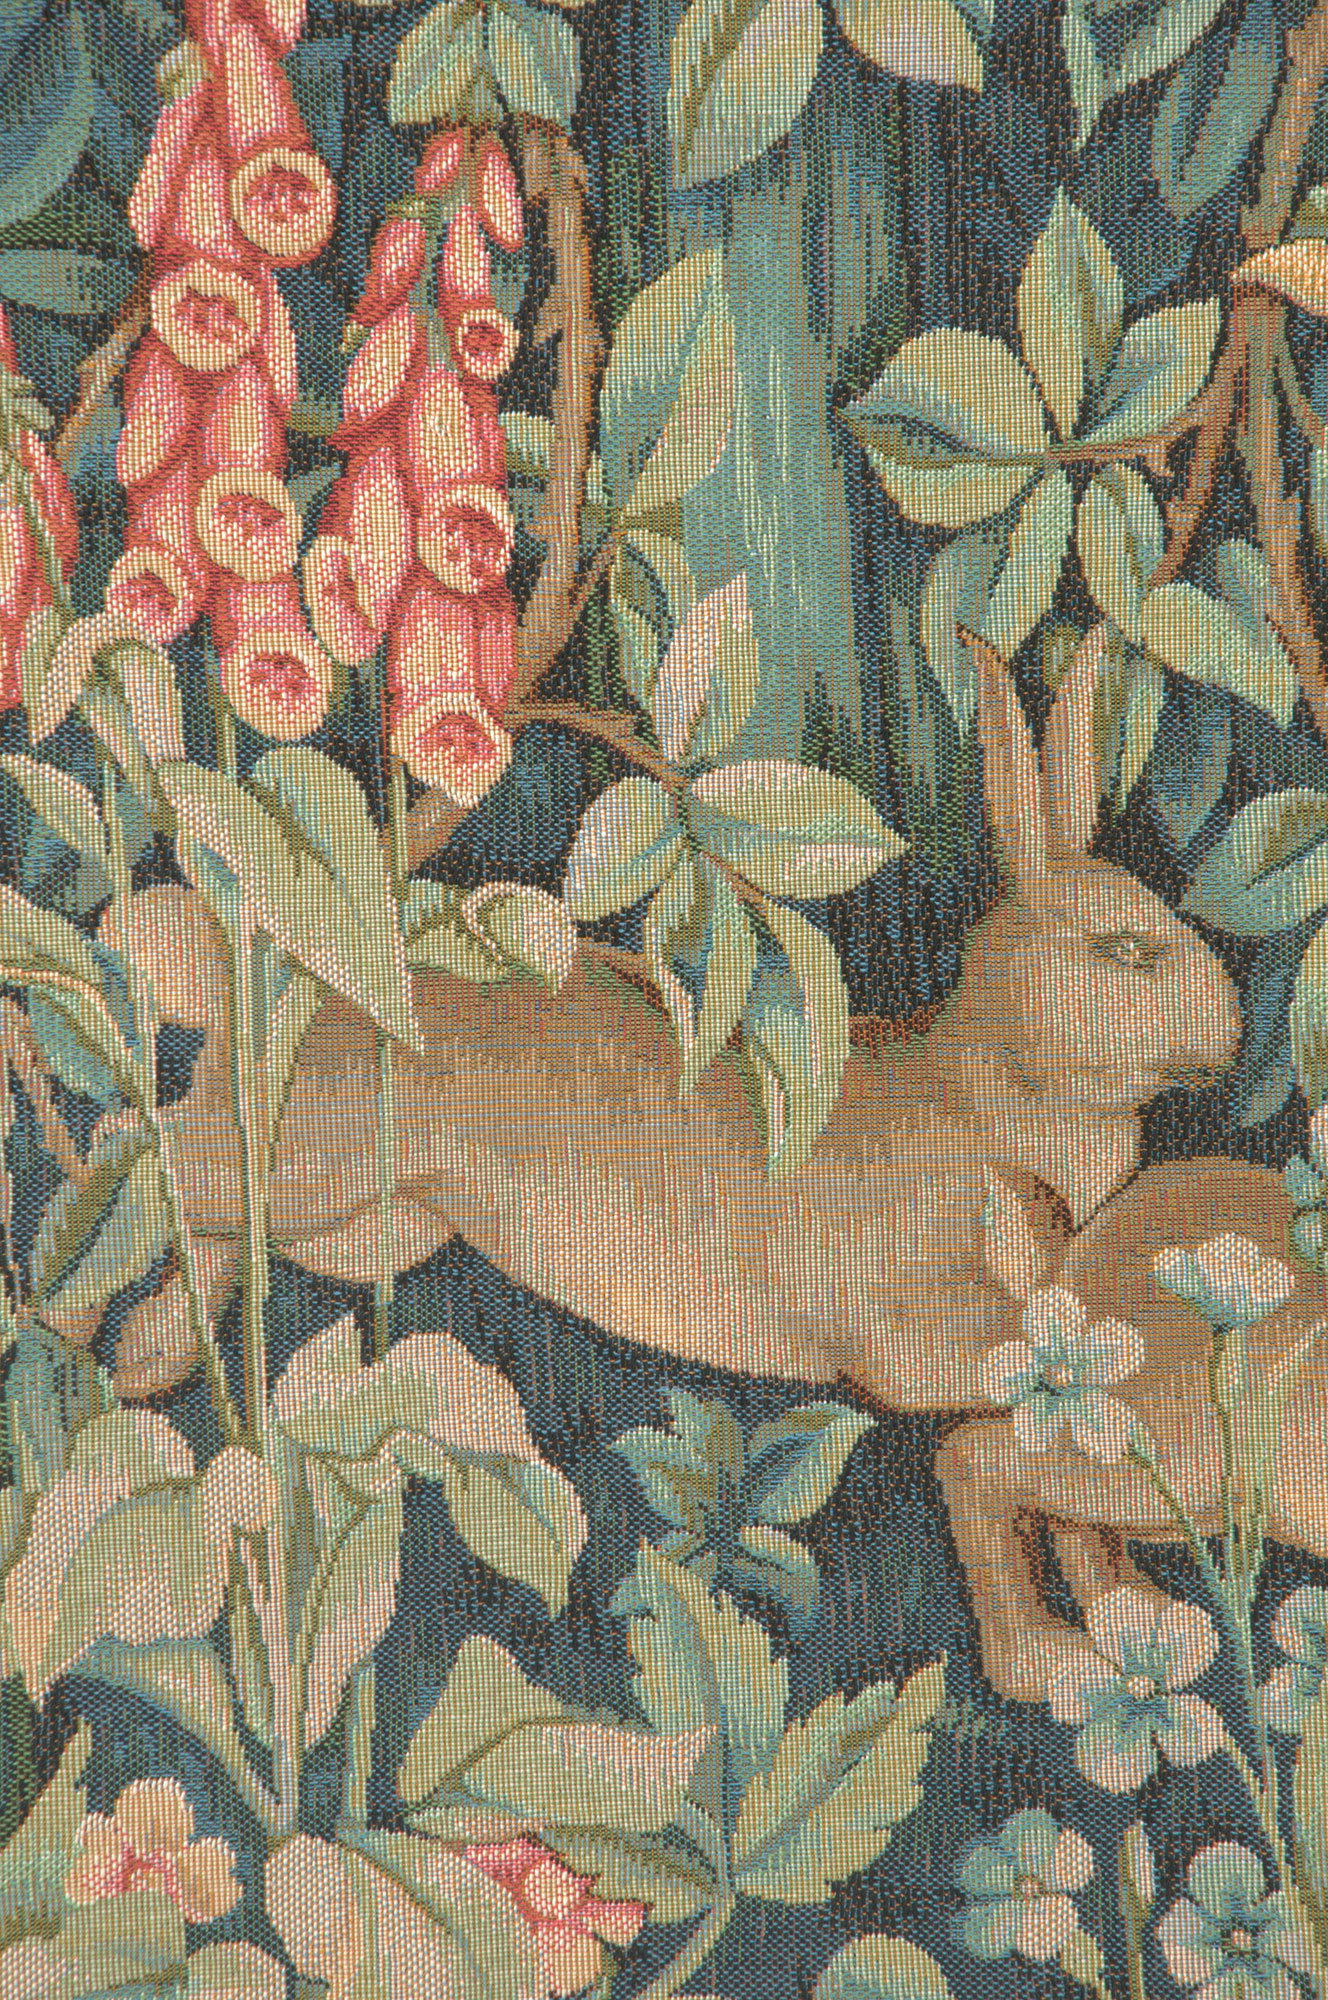 Most Recently Released Rabbit, Pheasant, And Doe European Tapestry Wall Hanging For Blended Fabric Pheasant And Doe European Tapestries Wall Hangings (View 2 of 20)